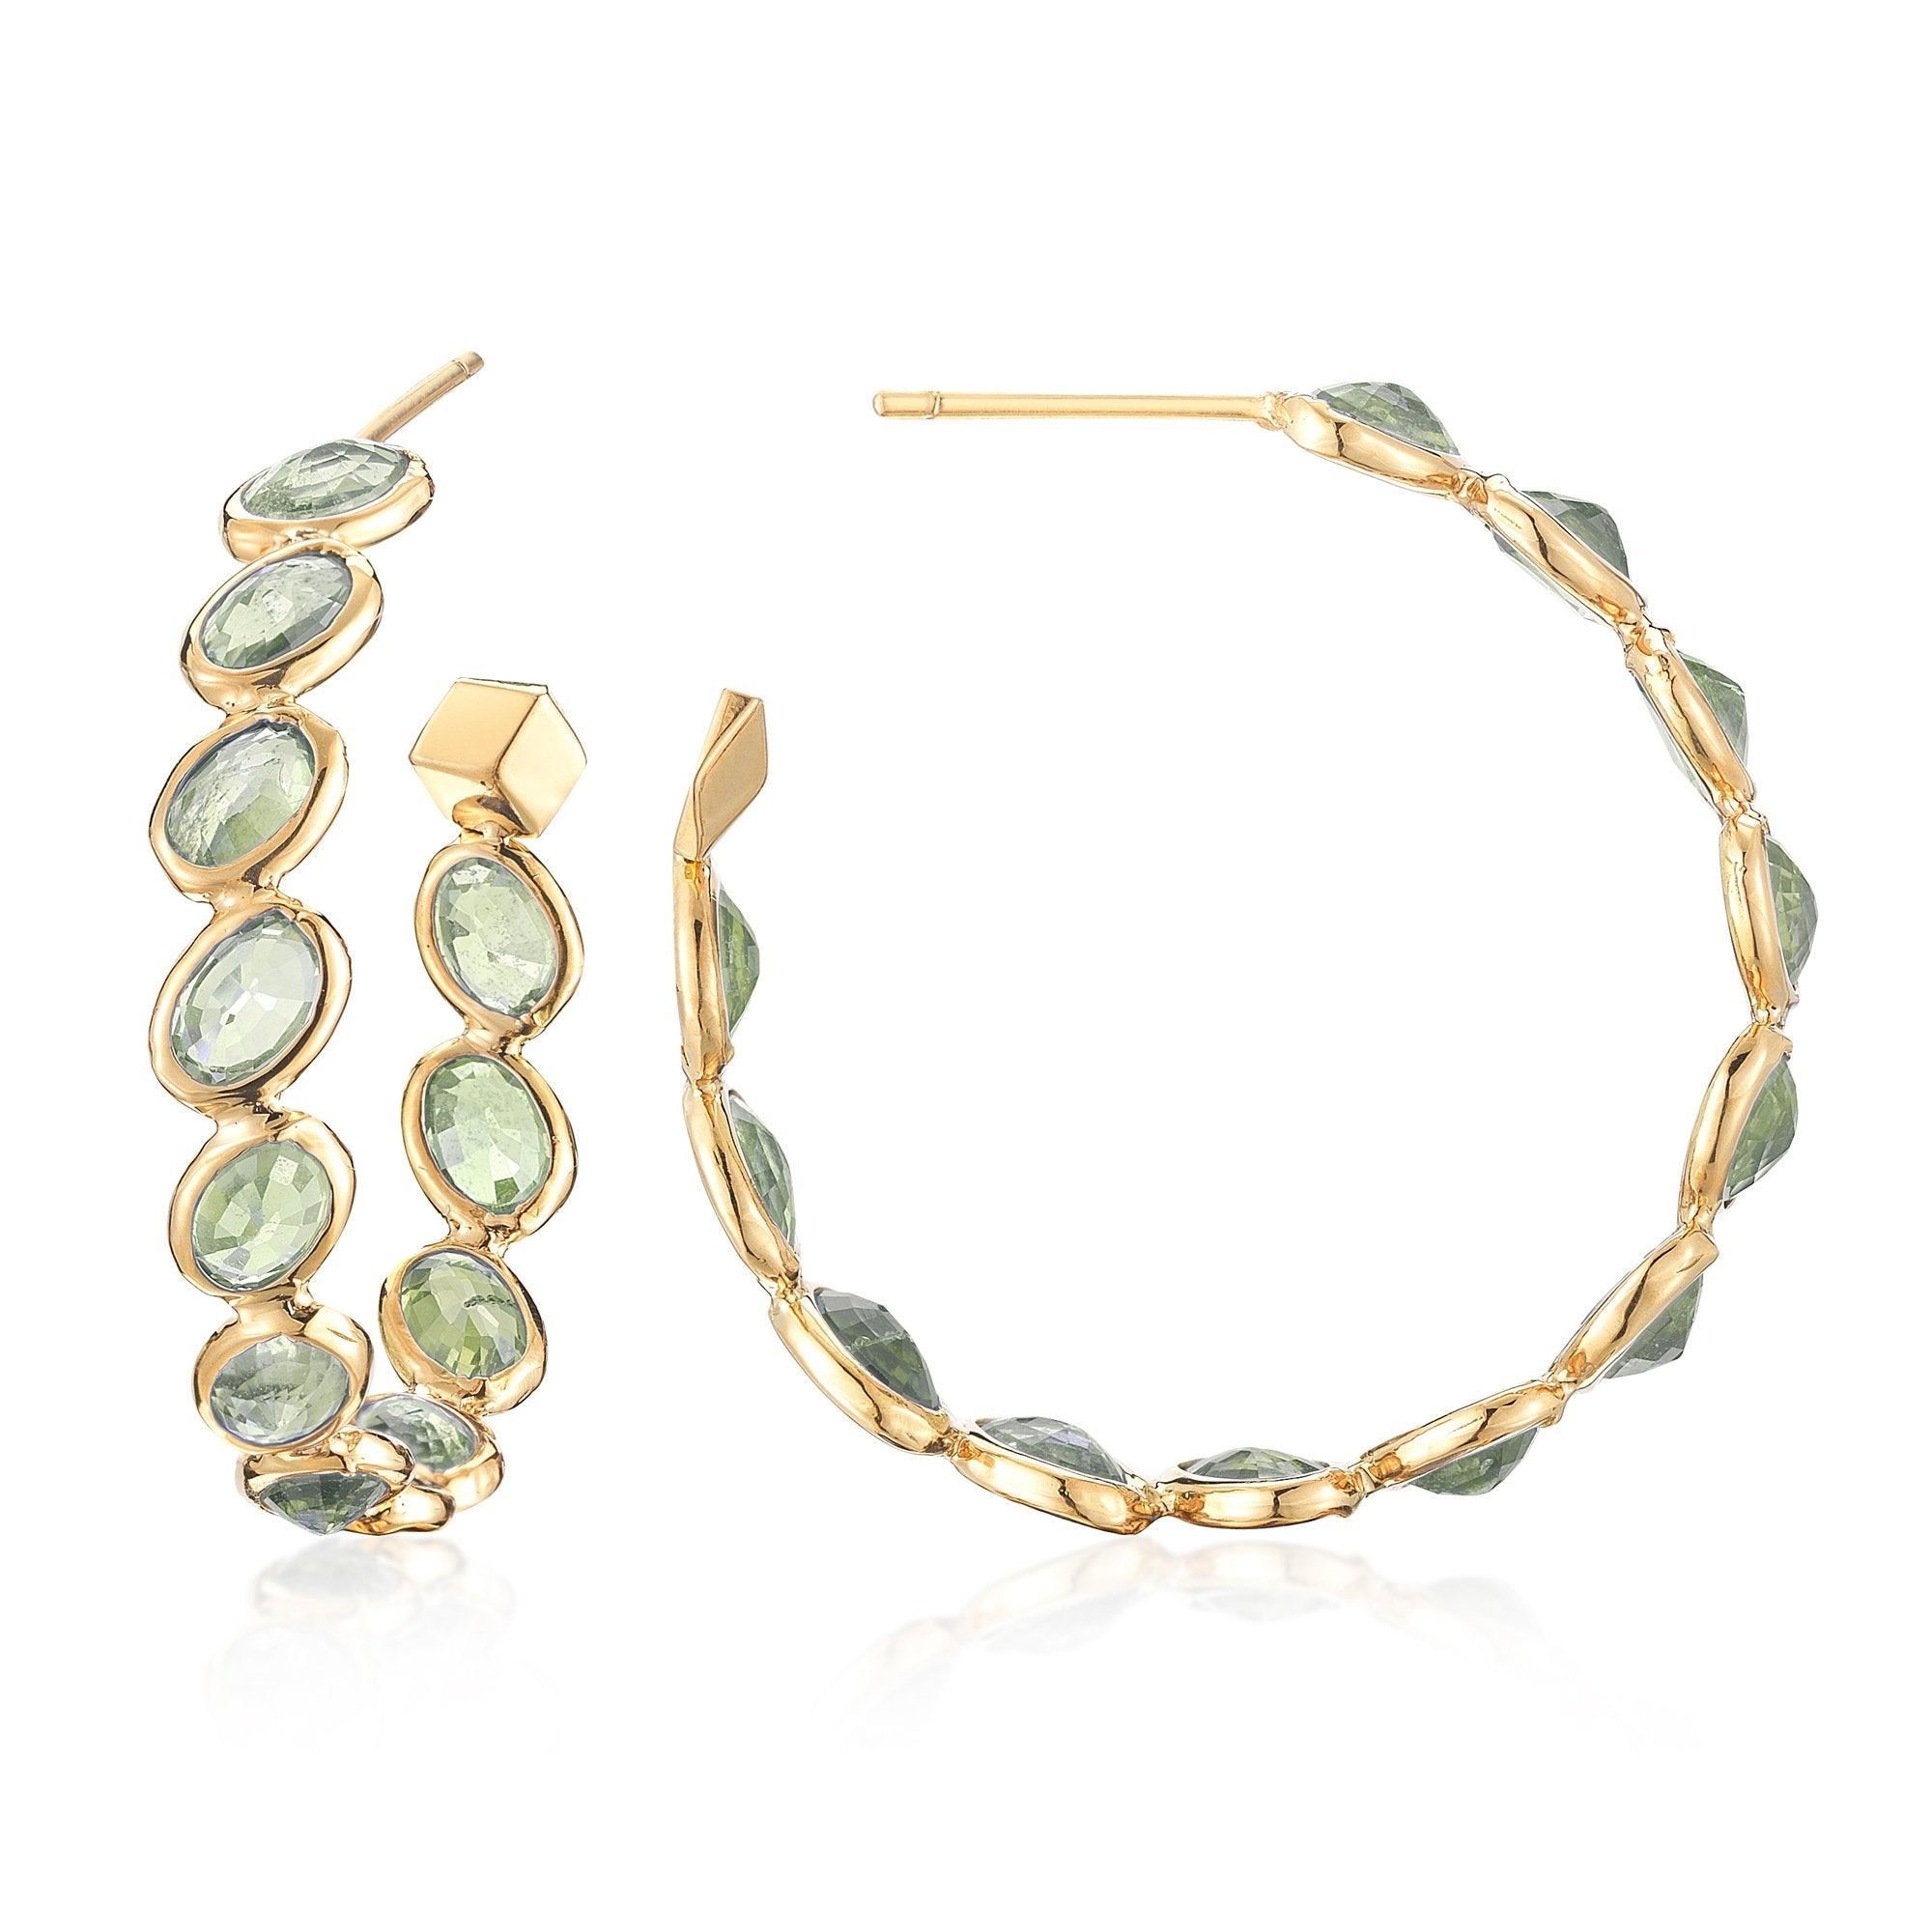 Green Sapphire 'Ombre' Hoop Earrings, Medium - Paolo Costagli - 1